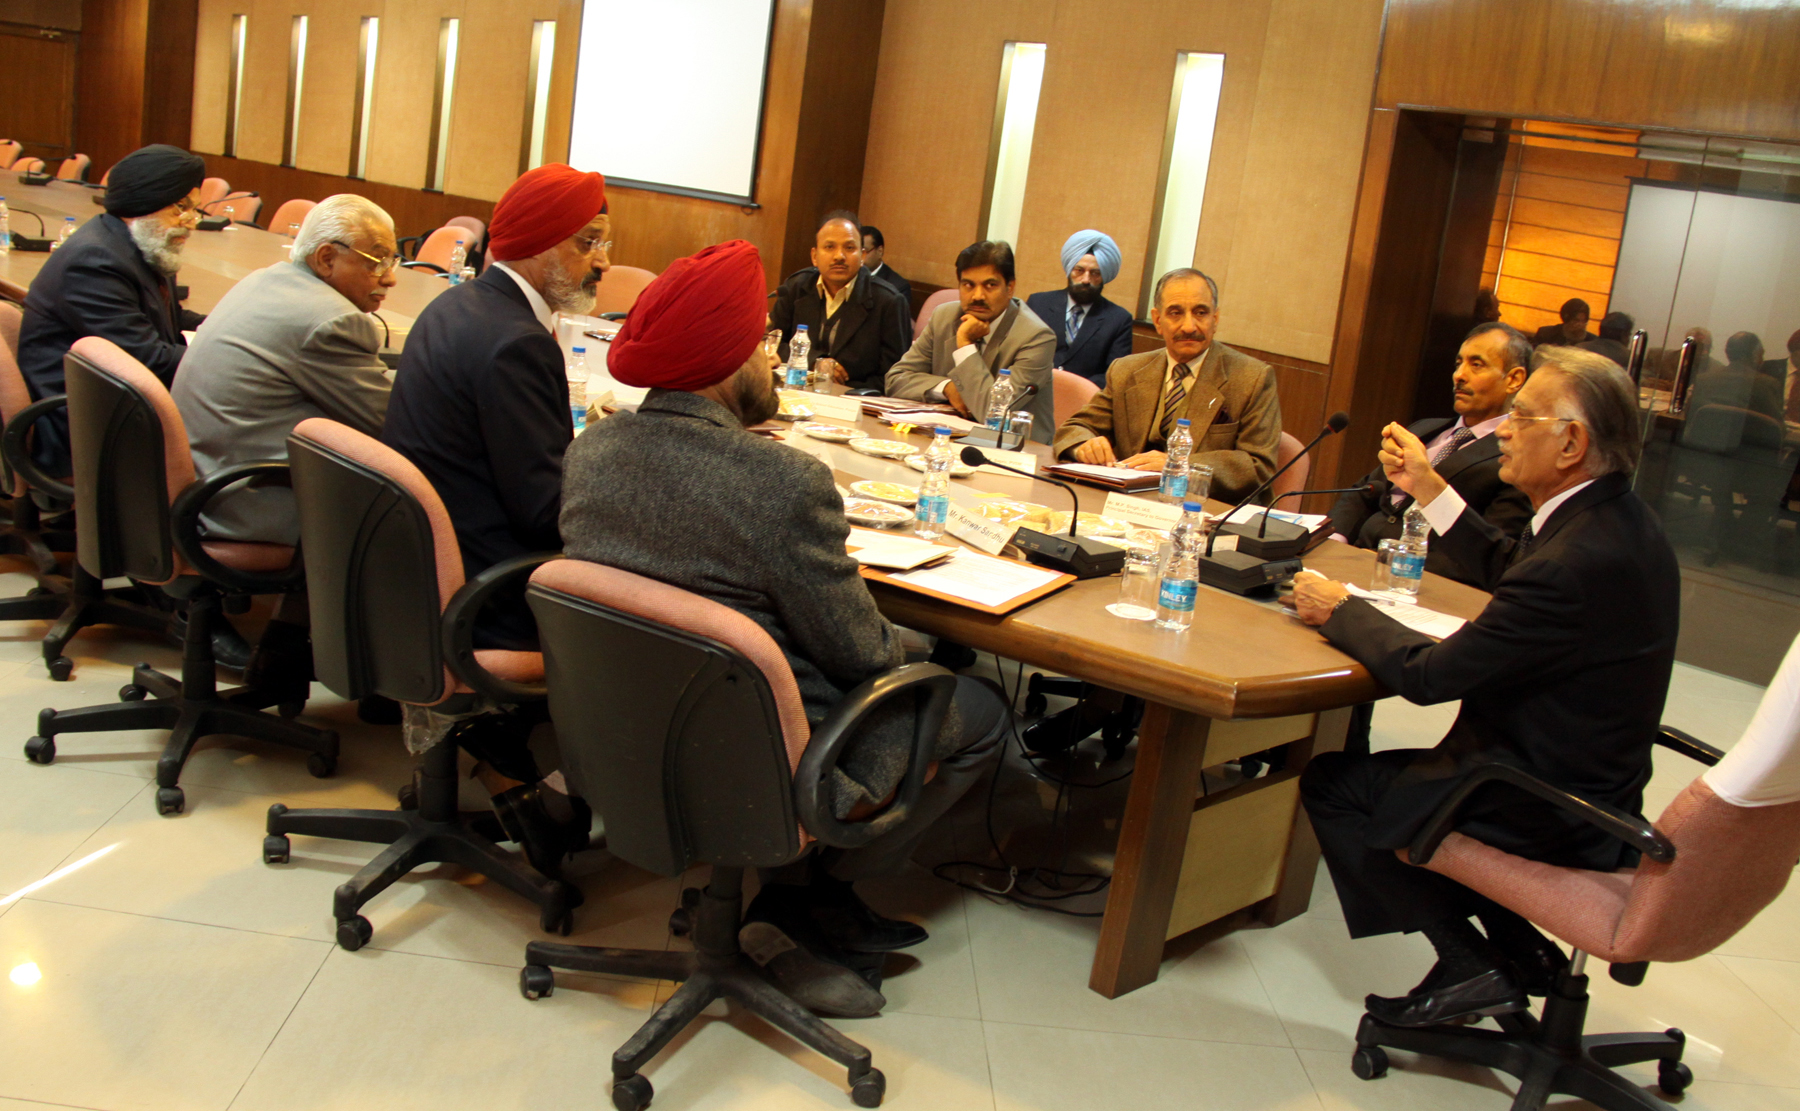 The Punjab Governor and Administrator, UT, Chandigarh, Mr. Shivraj V. Patil presiding over the Board of Governors meeting of the Punjab Public School Nabha at Chandigarh on 18.12.2014.